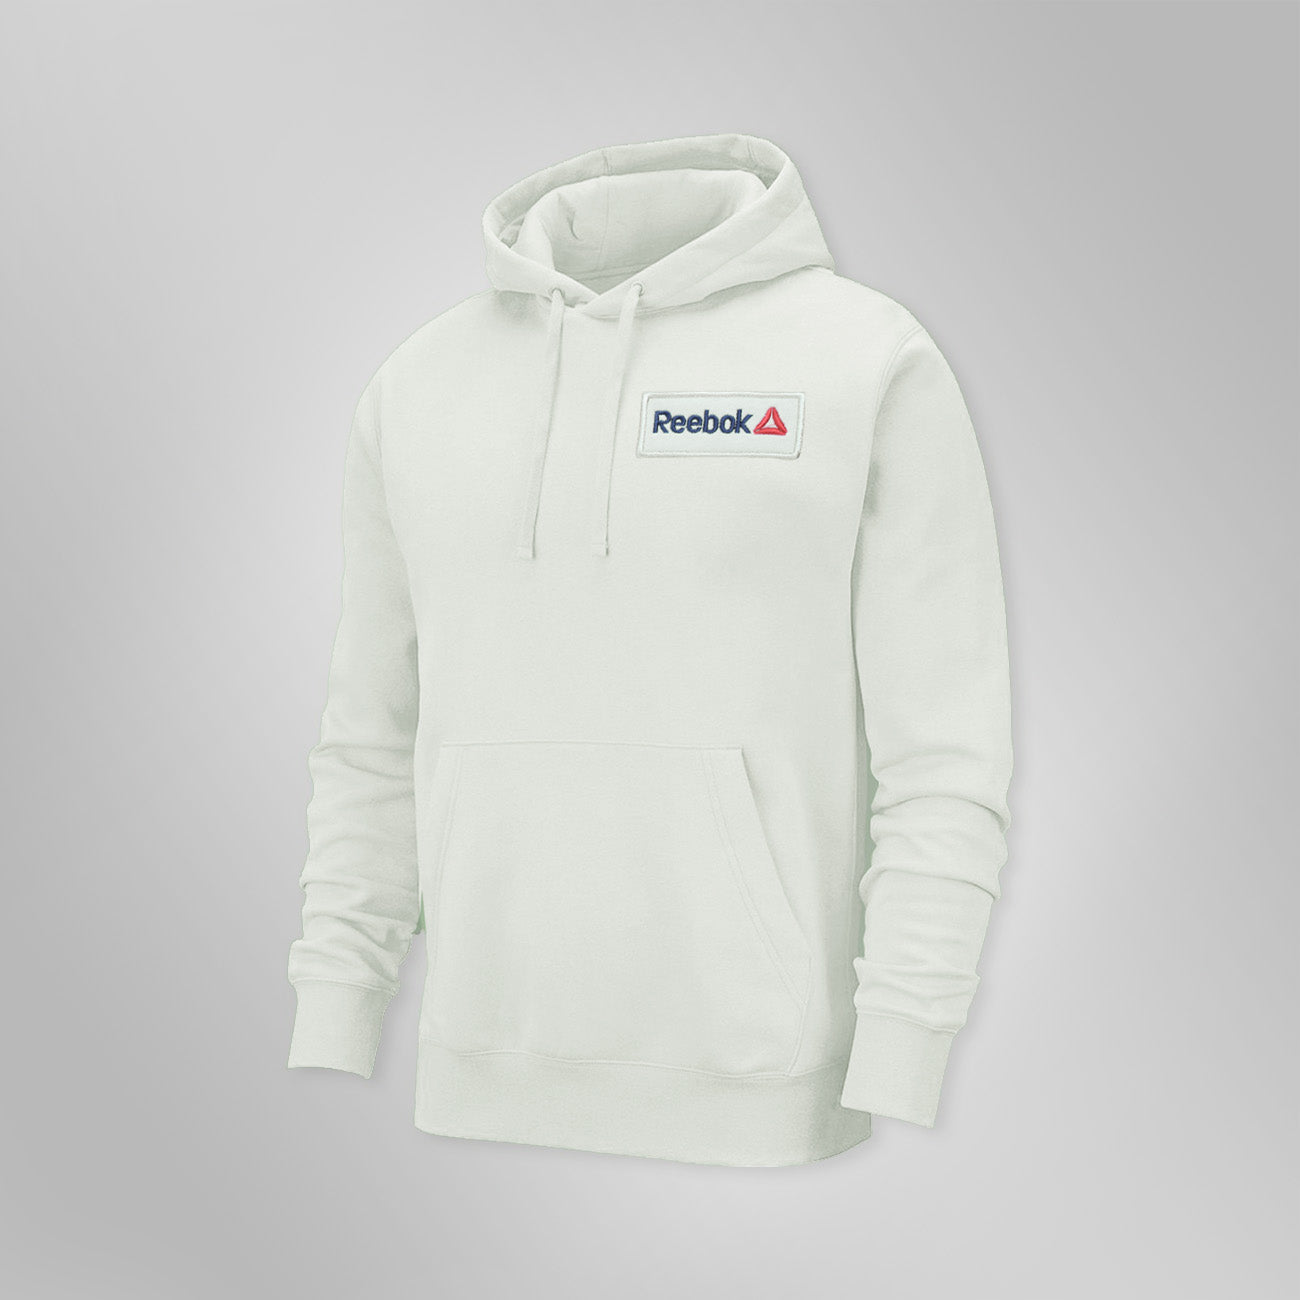 RB Fleece Pullover Hoodie For Men-White Smoke with Navy Embroidery-BE13179